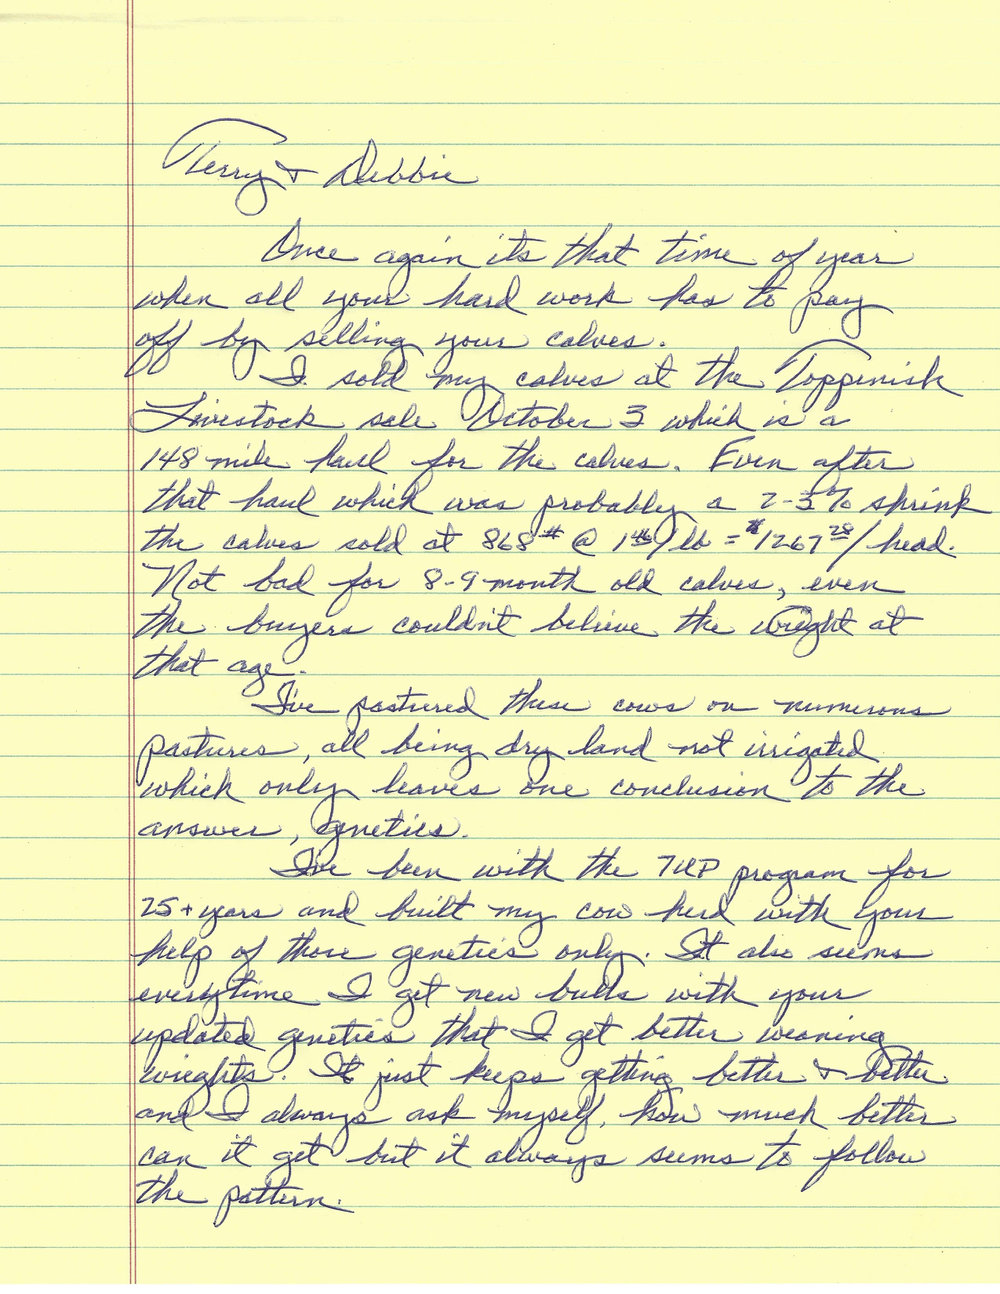 Ltr from Jerry PAGE 1.jpg